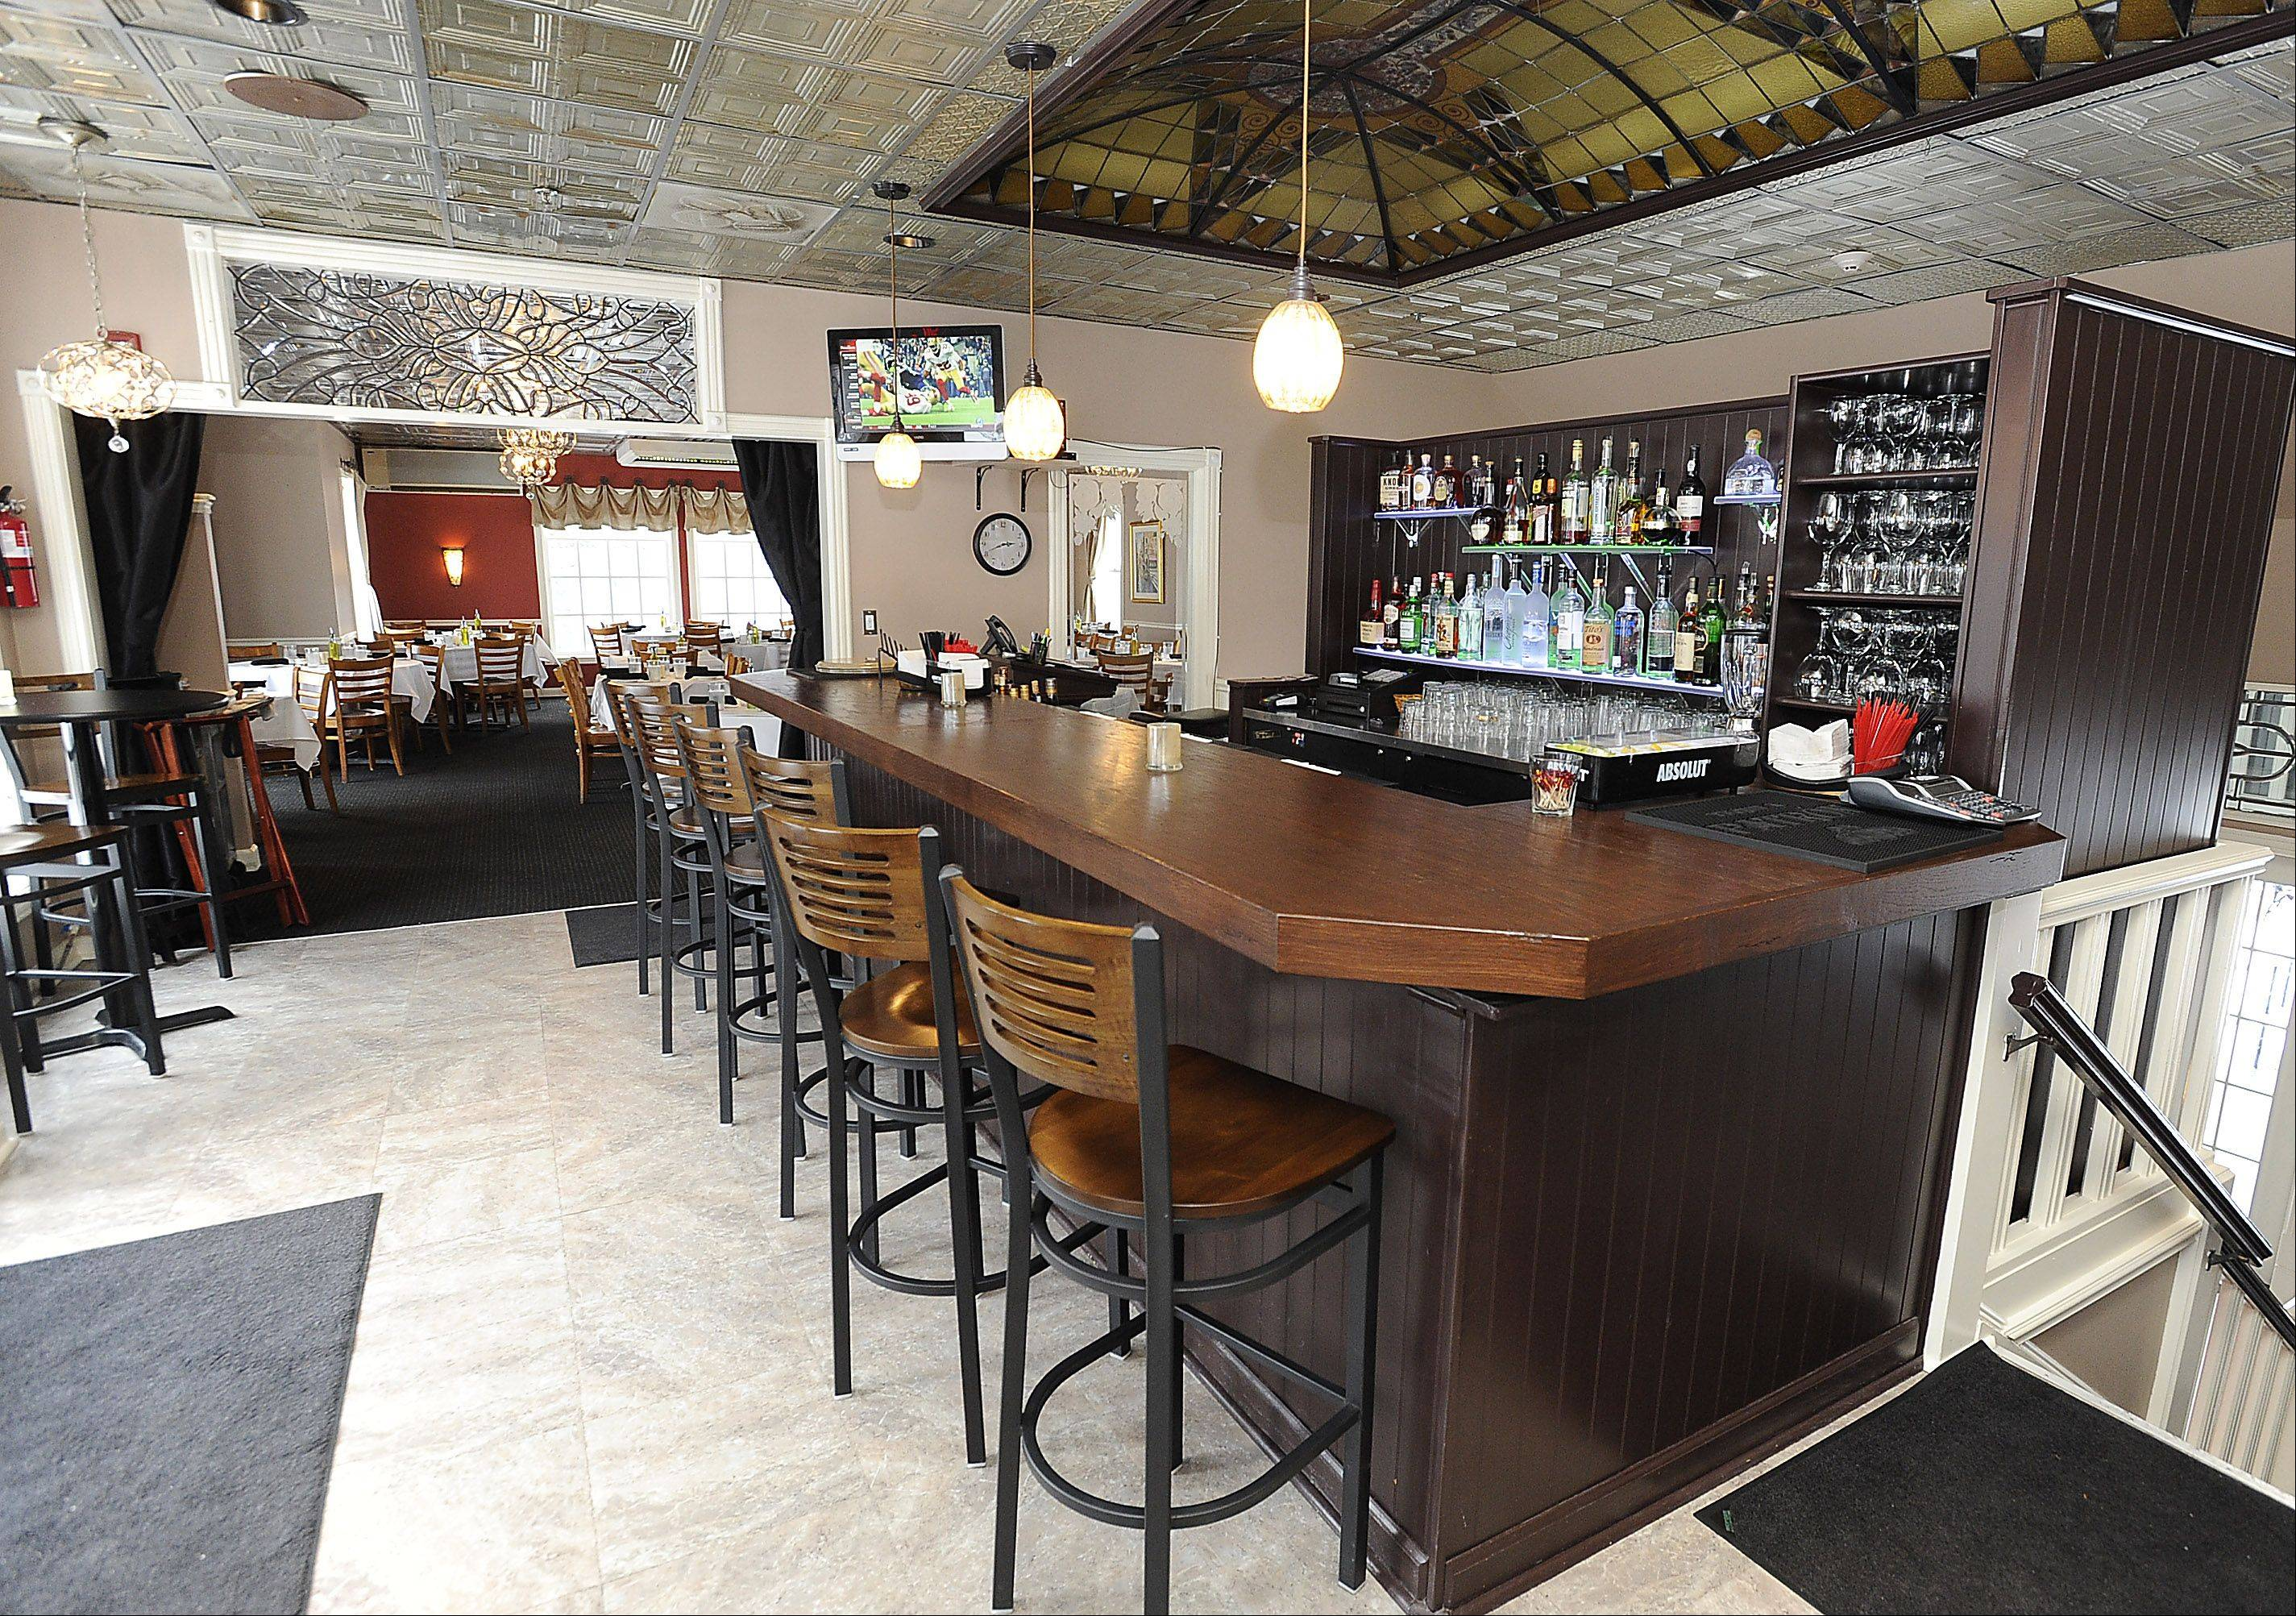 Enzo & Lucia in Long Grove features a newly remodeled bar.